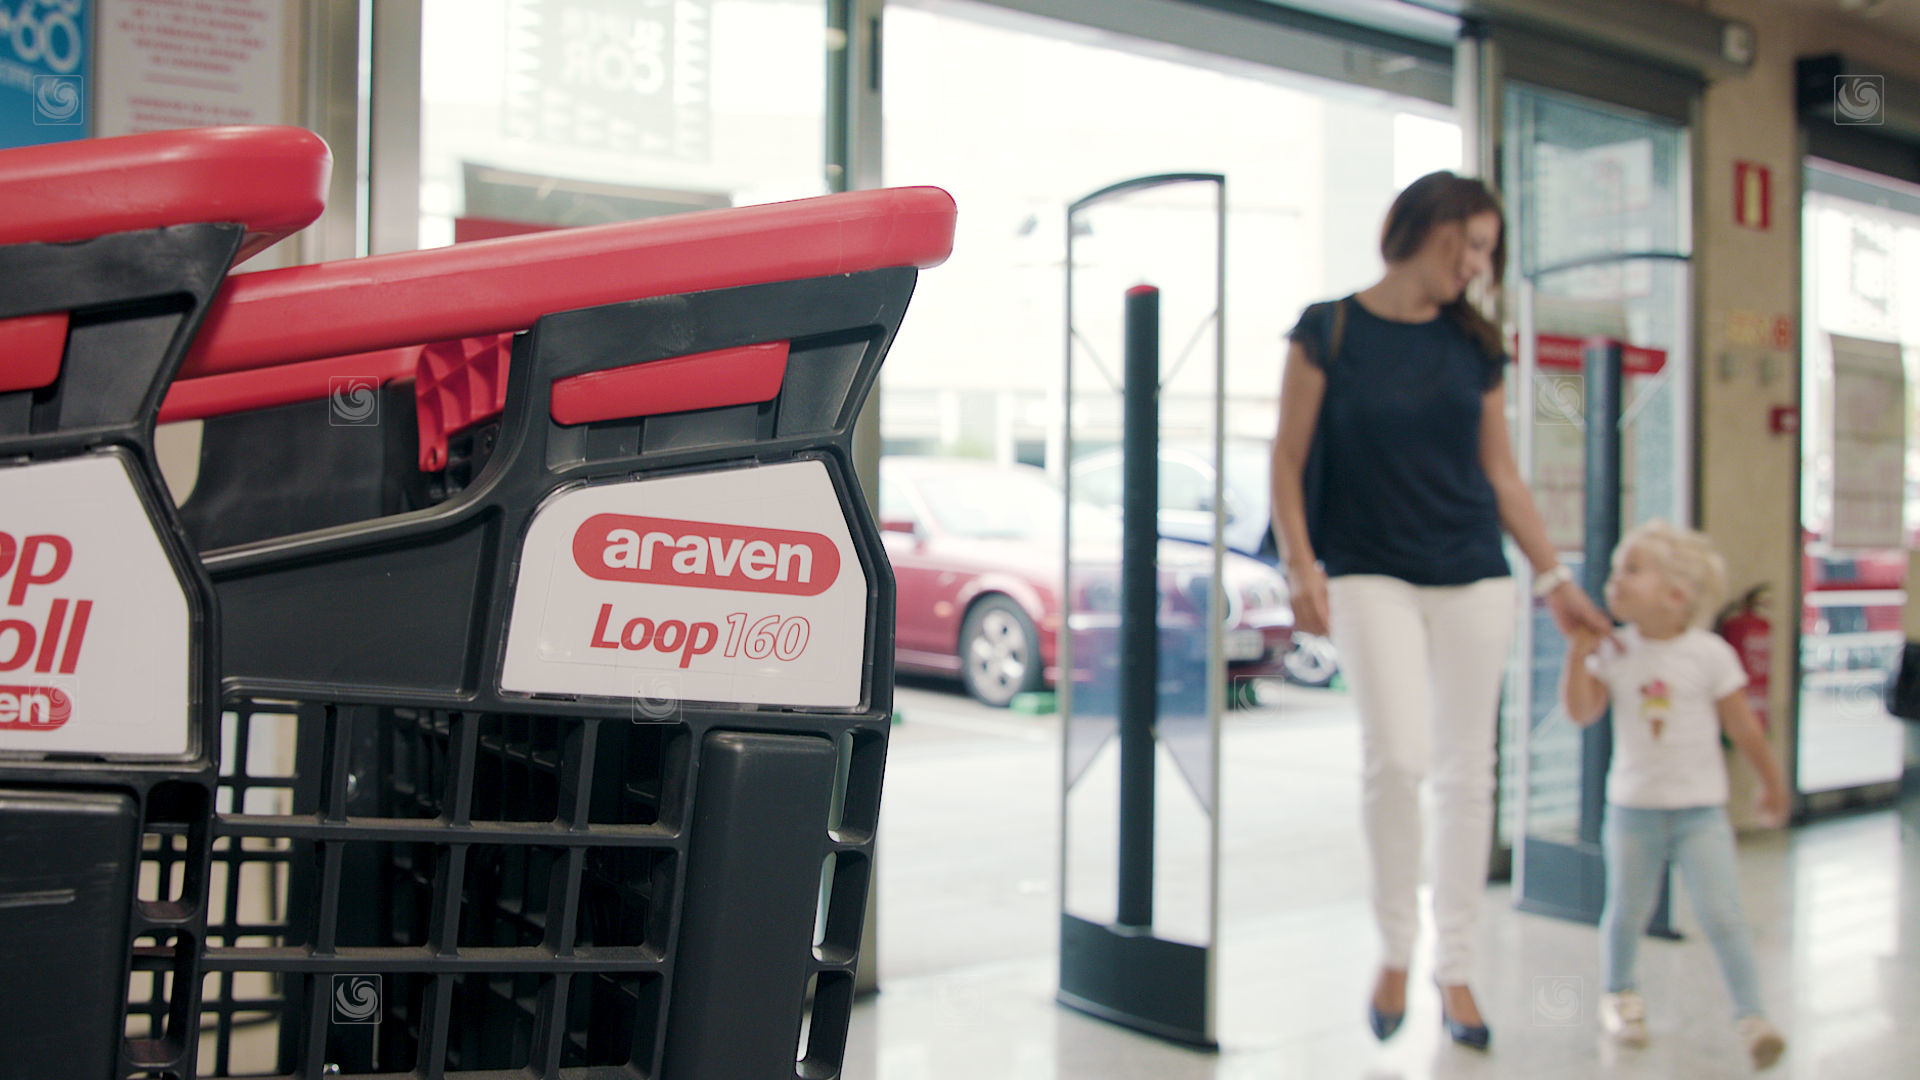 araven-happier-shoppers